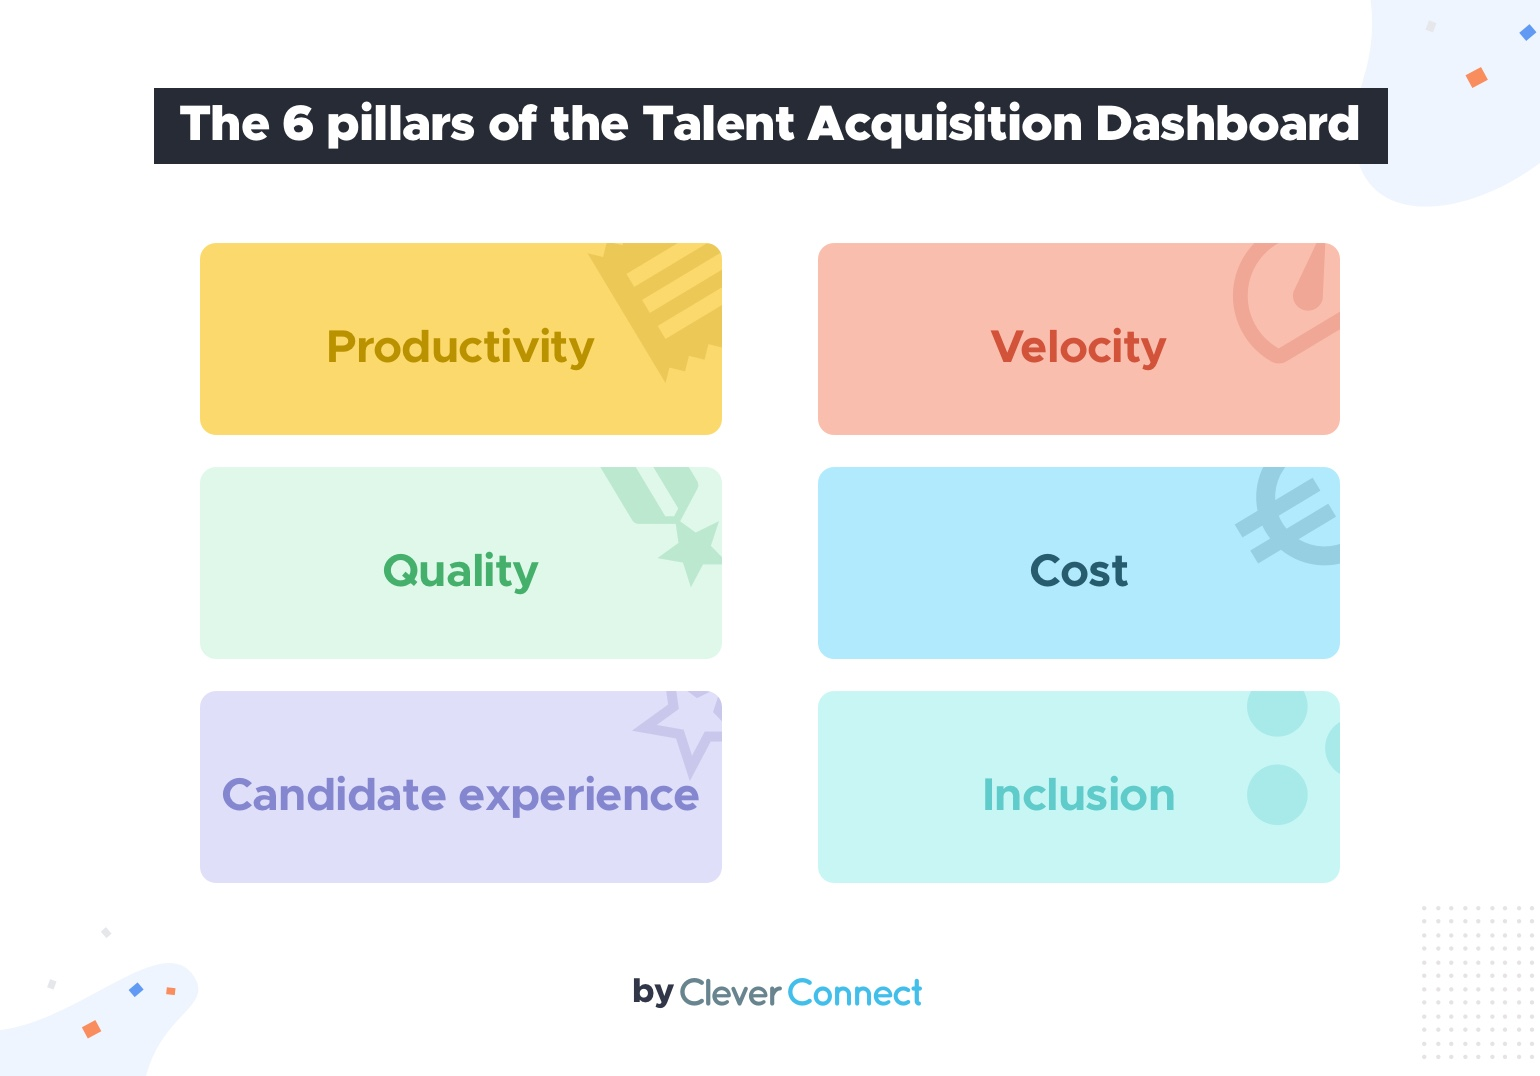 The 6 key pillars of the Talent Acquisition Dashboard